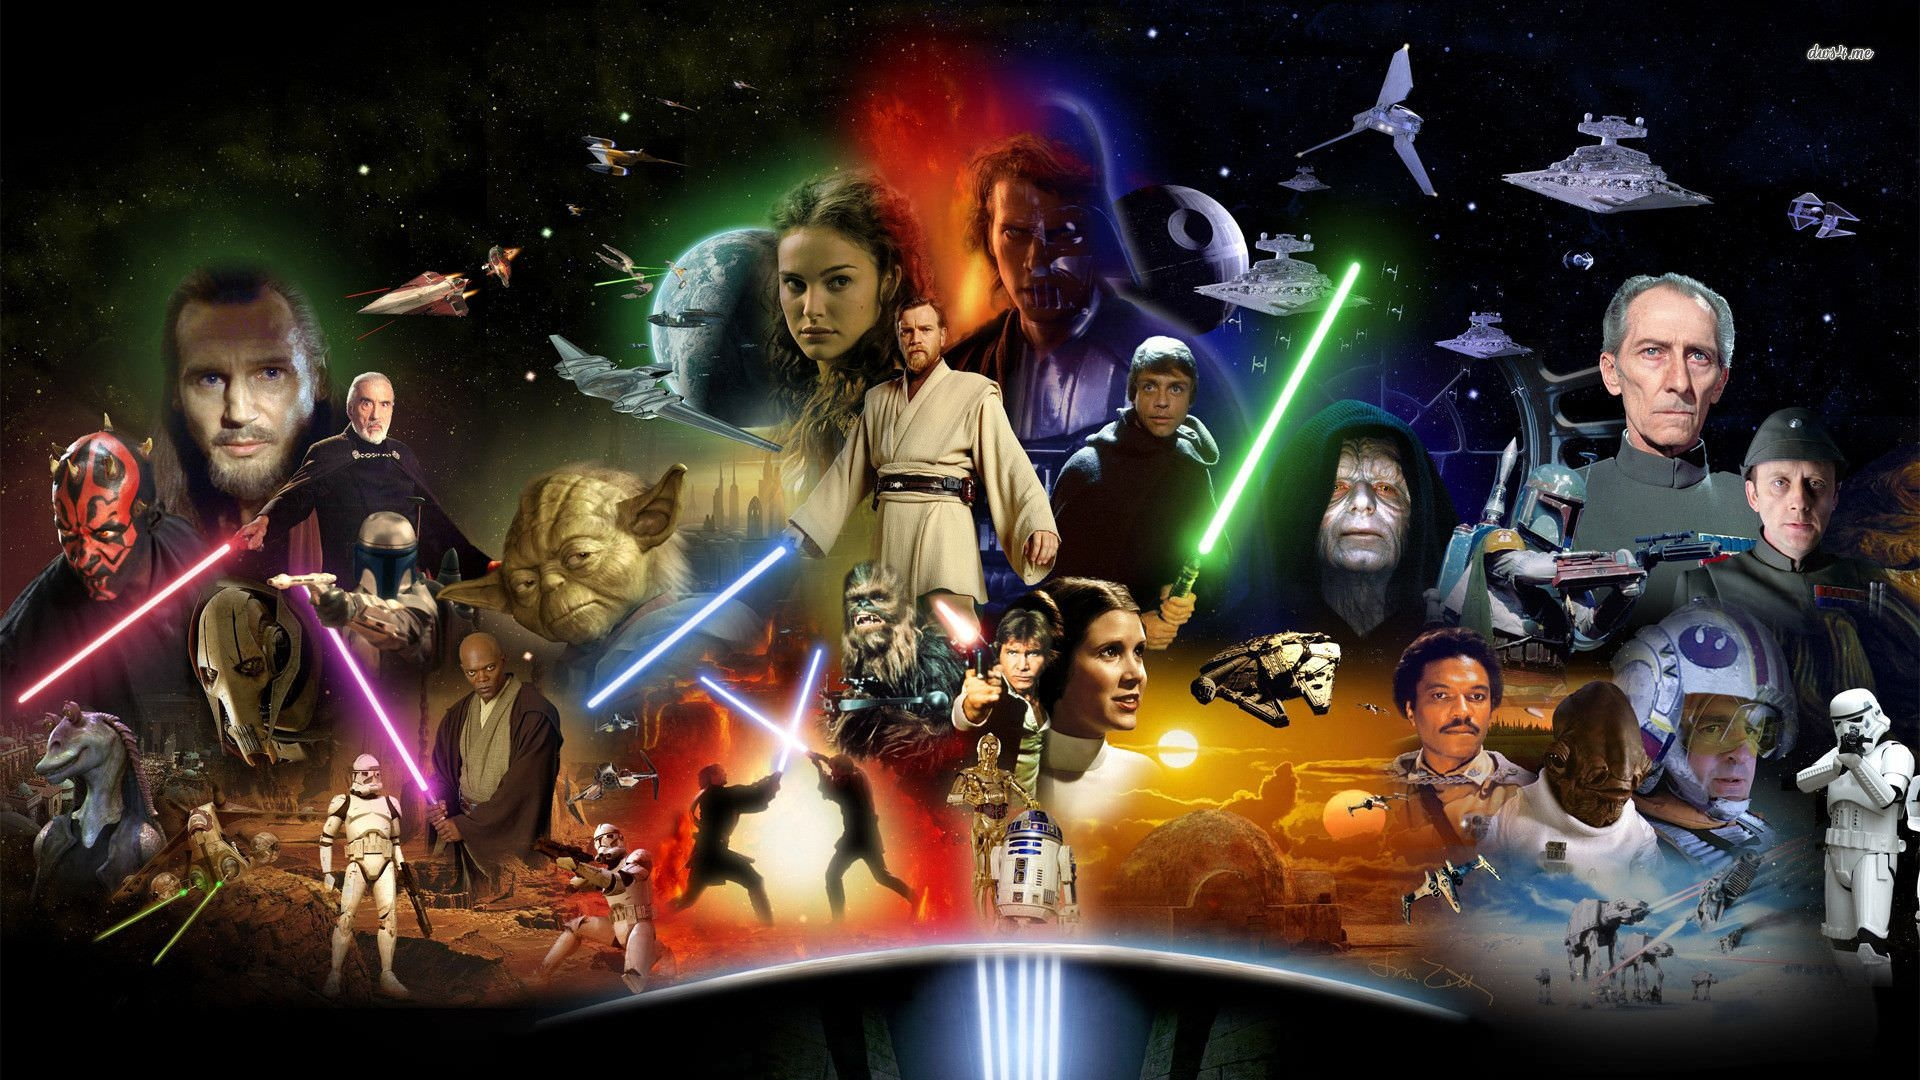 Star Wars Wallpaper For Download